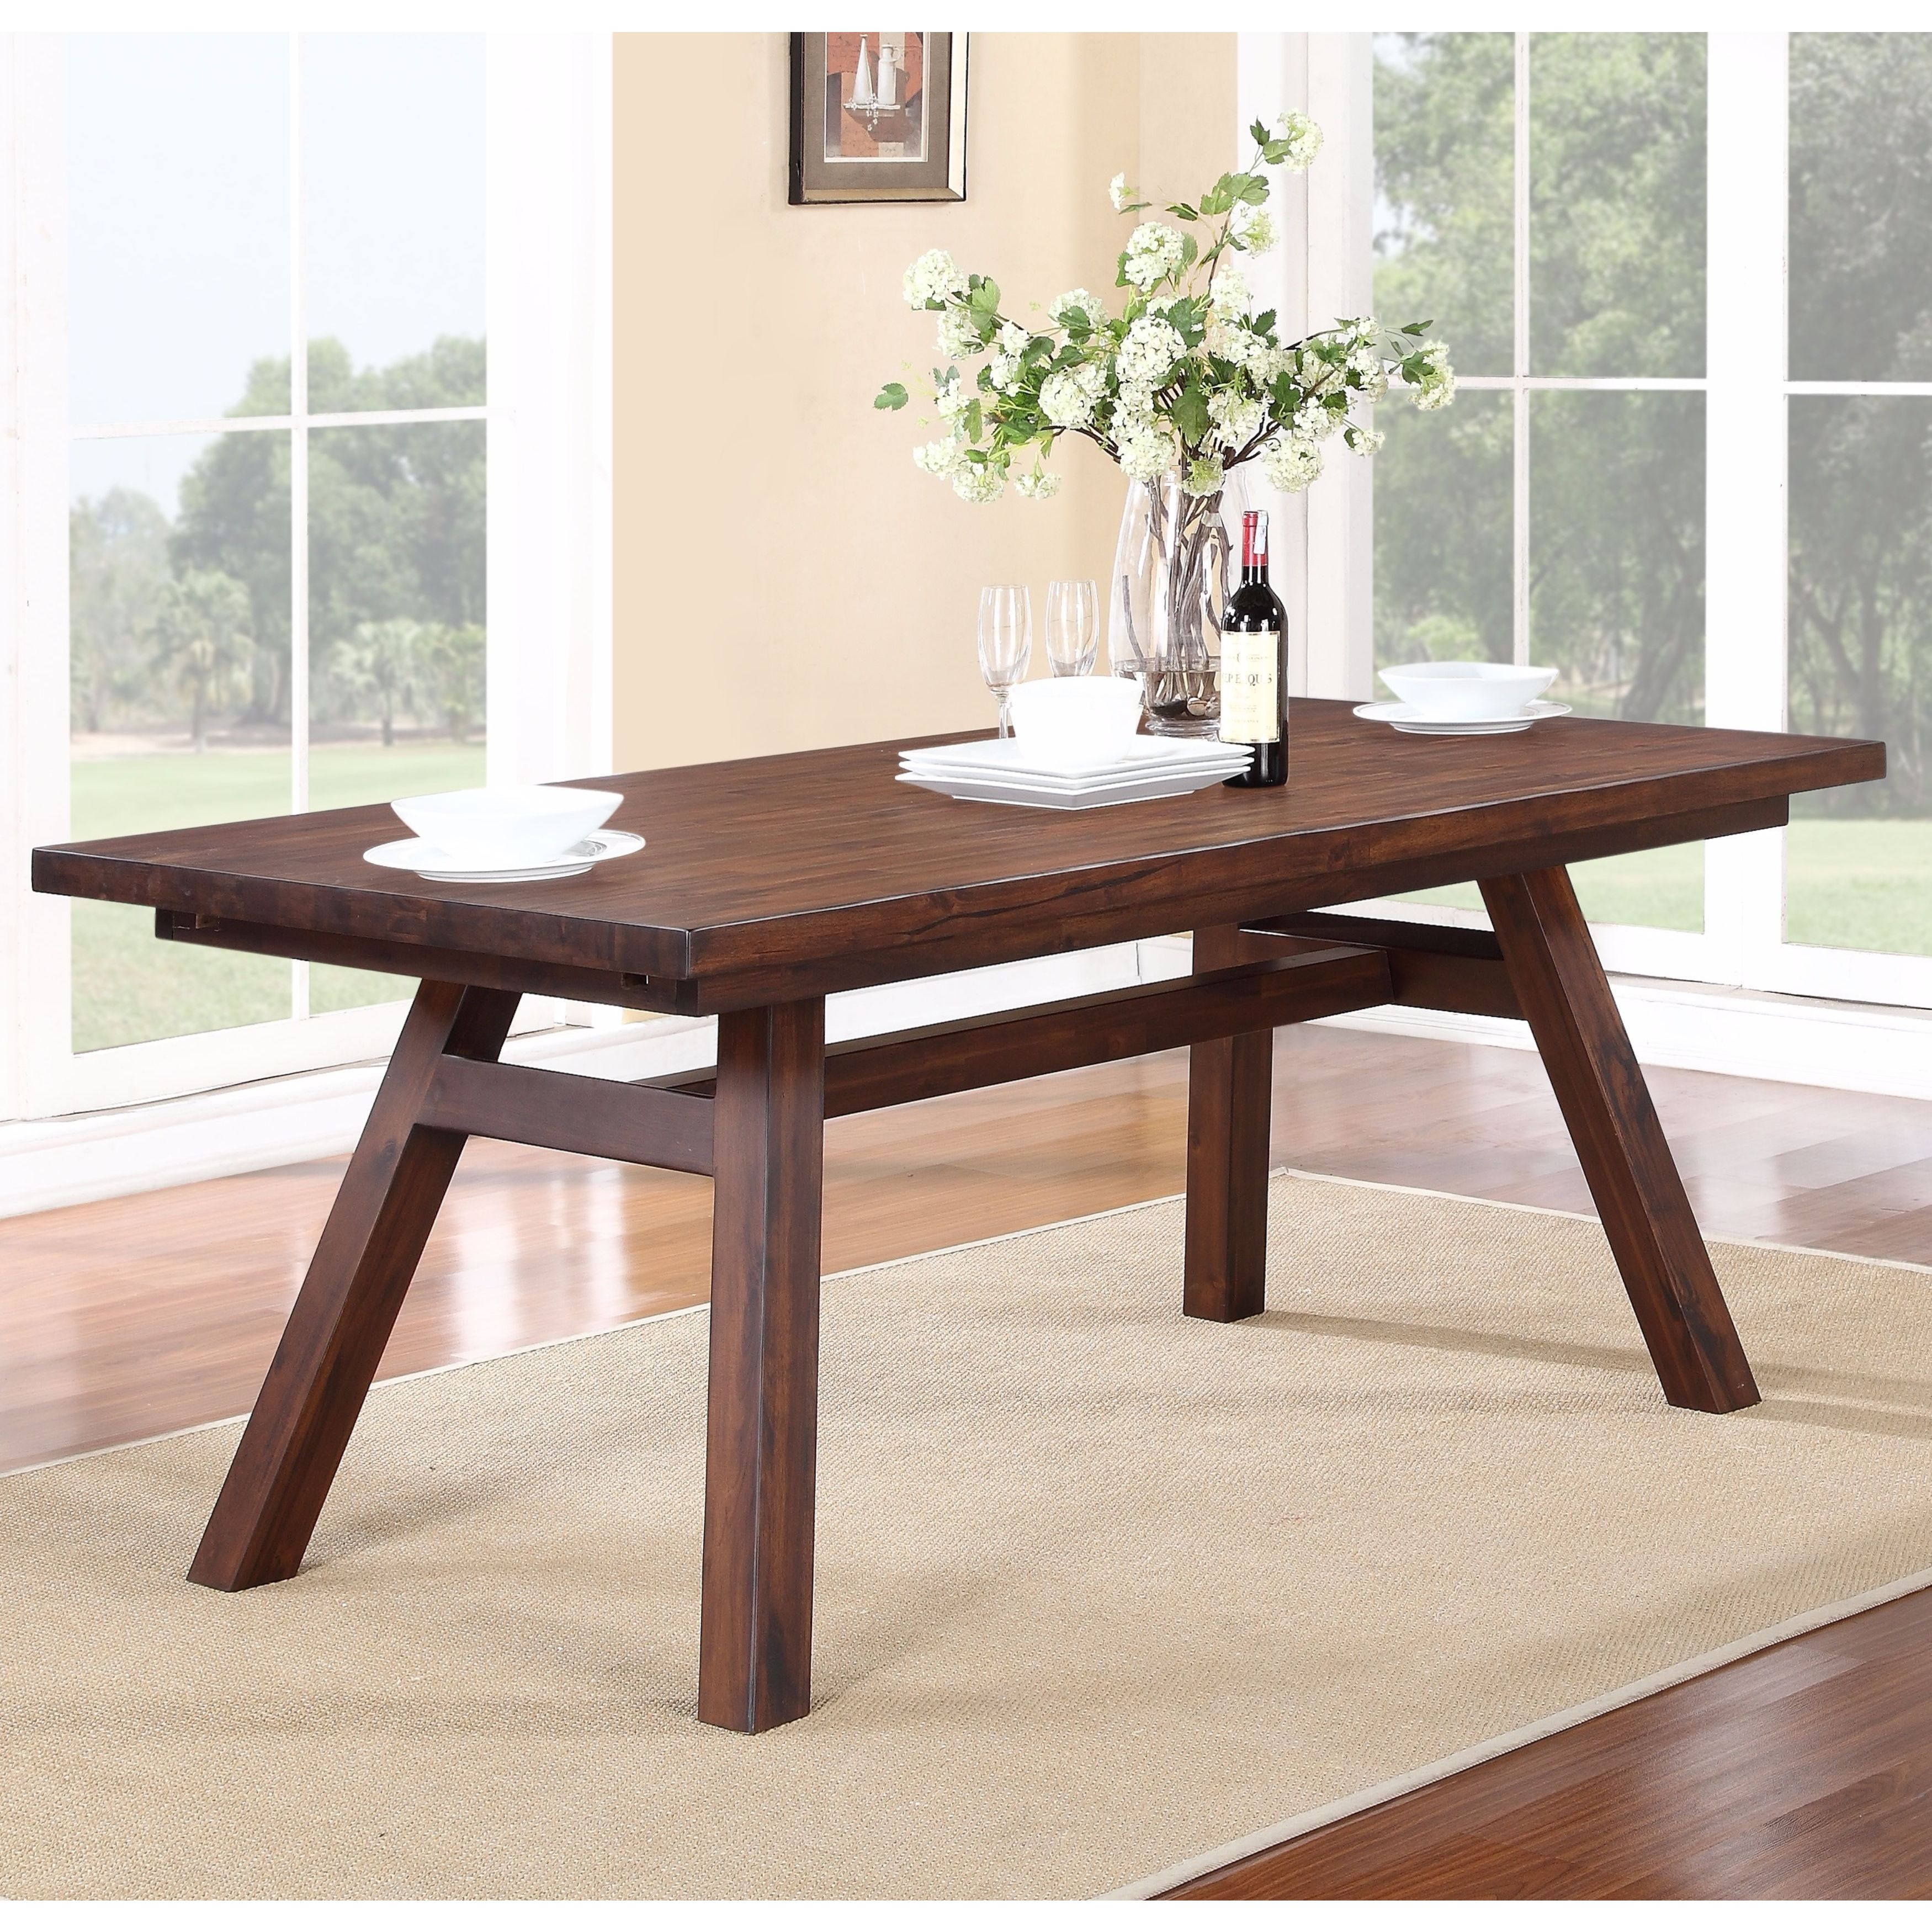 Solid Wood Modern Rectangular Extension Table Free Shipping Today 17680036